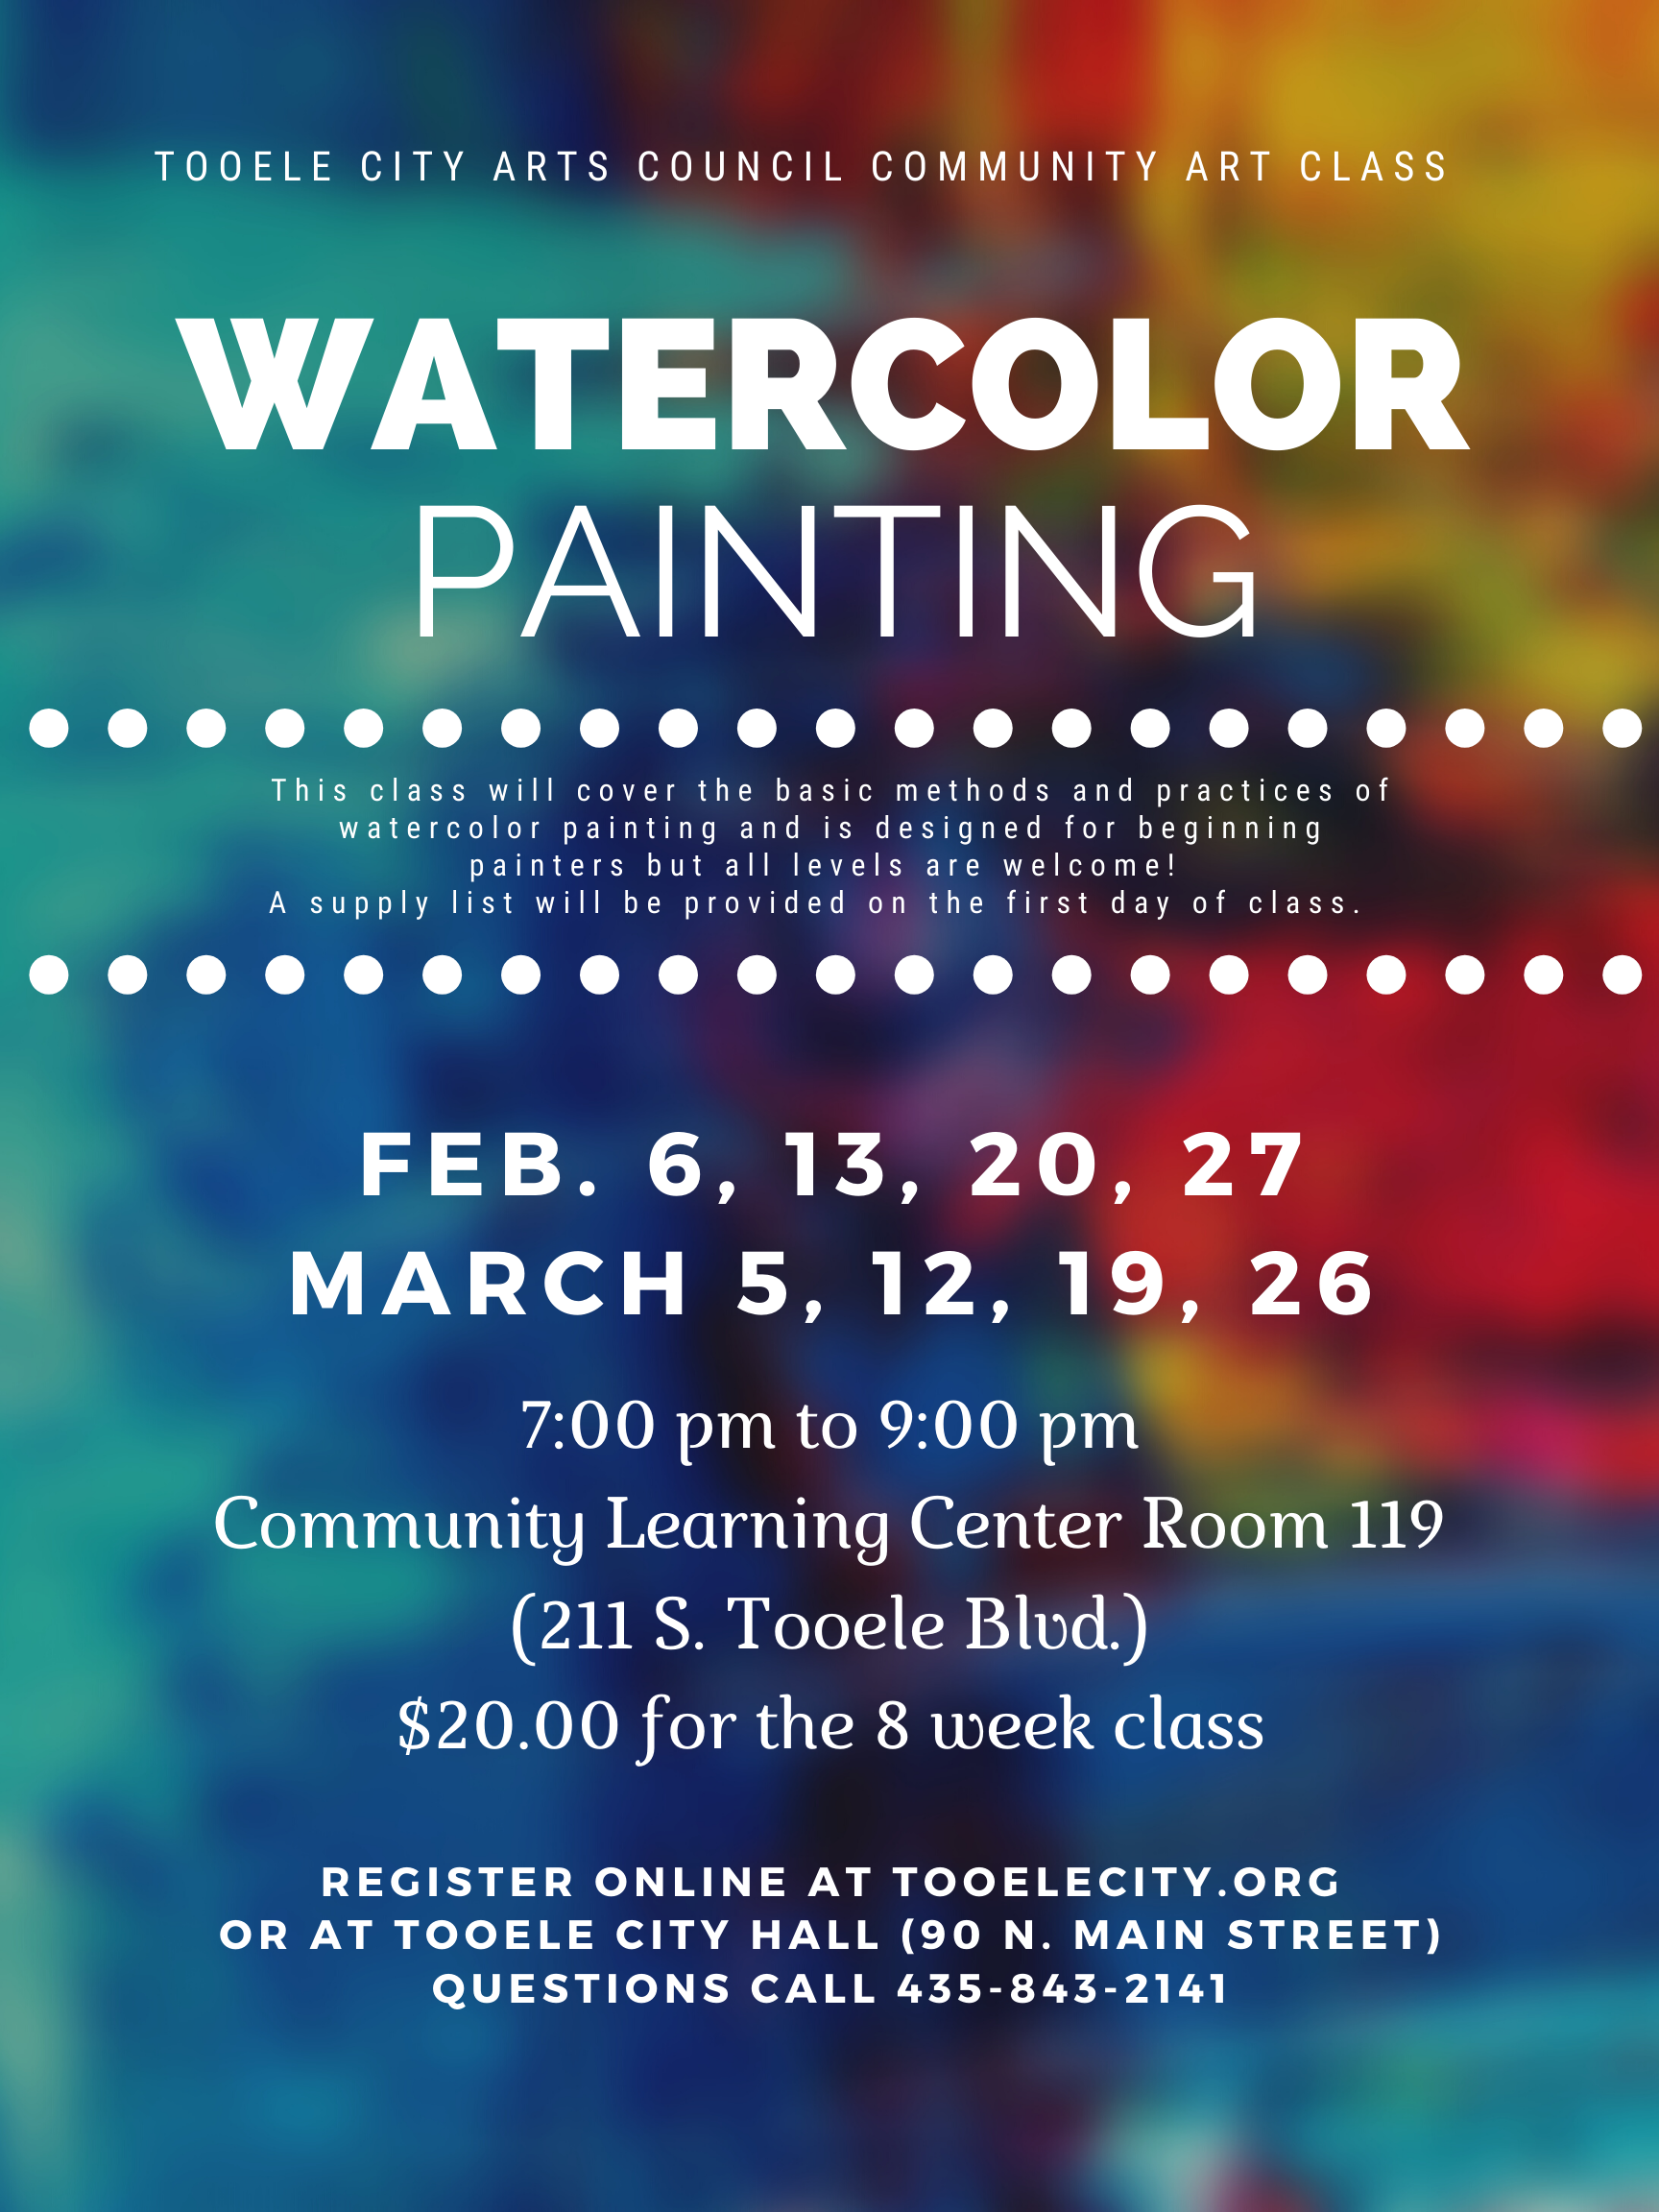 Watercolor Painting 2020 @ Community Learning Center Room #119 | Tooele | Utah | United States